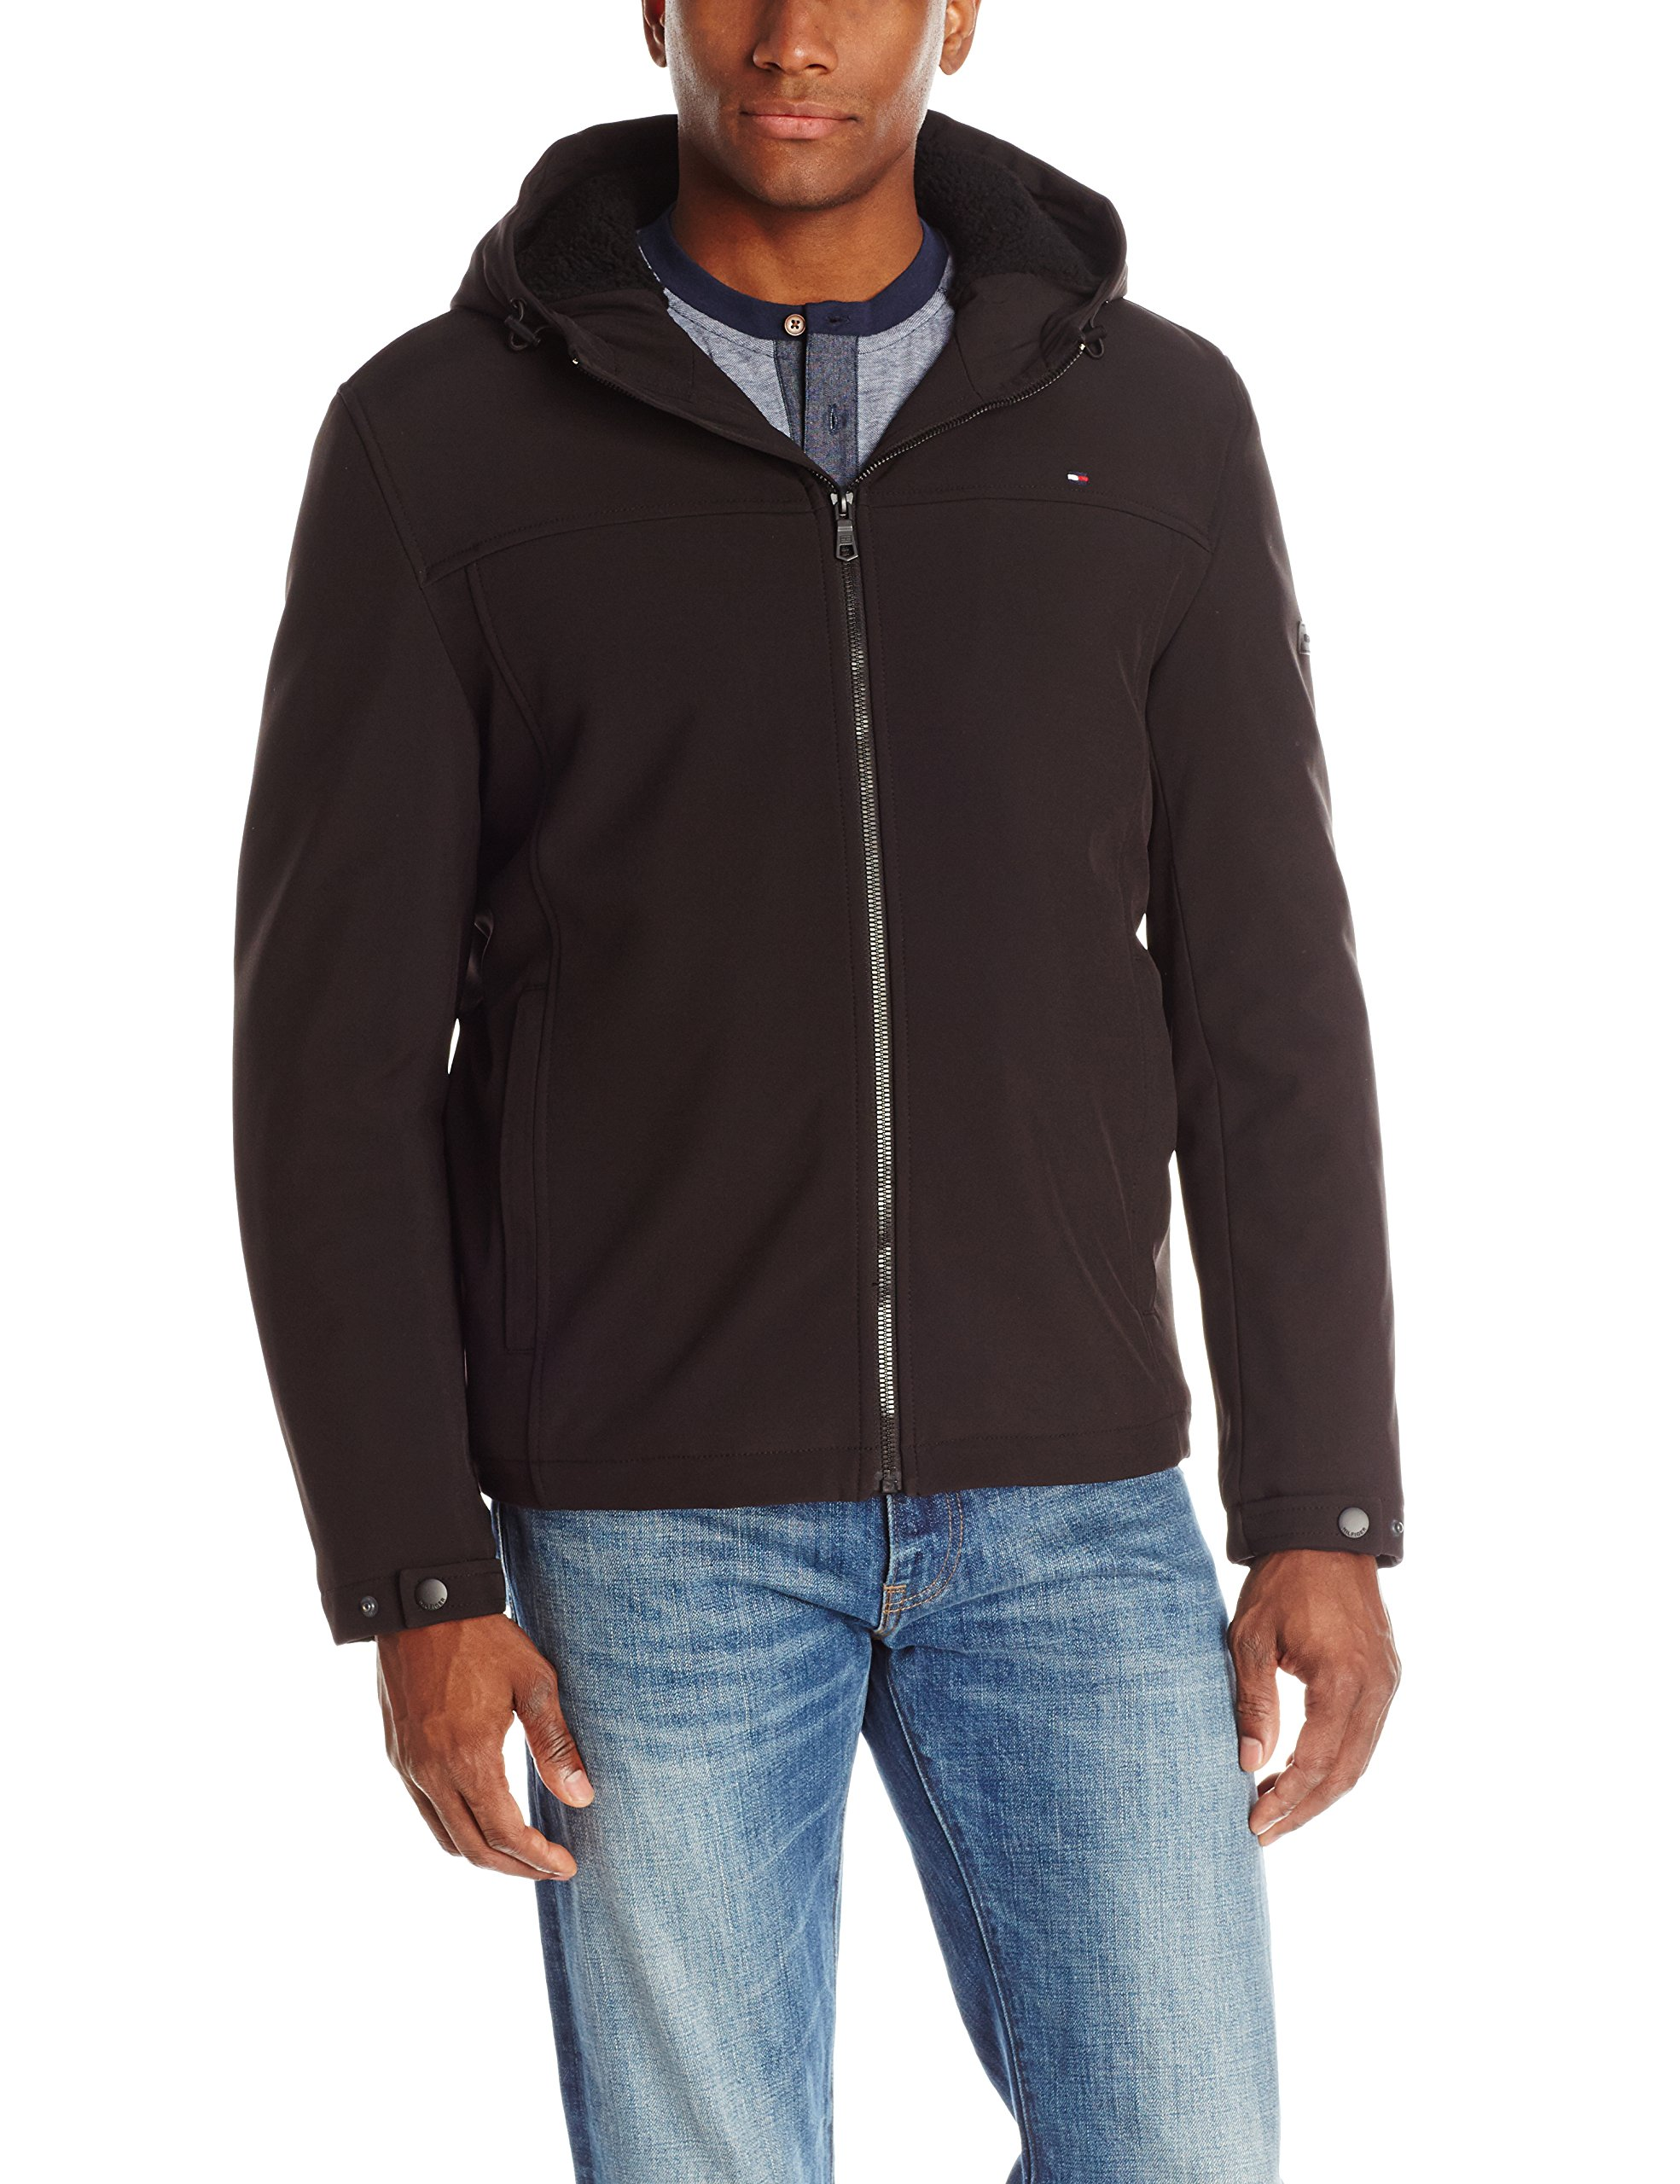 Tommy Hilfiger Men's Soft Shell Sherpa Lined Hoody, Black, Large